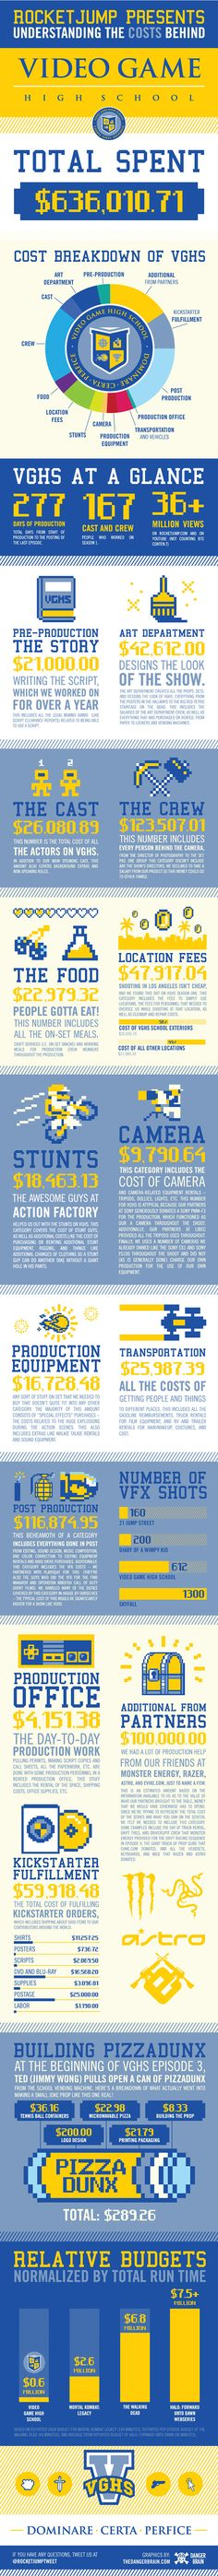 How Much Does It Cost To Create A Web Series? [Infographic] - The days of shooting a successful Web series with a low-quality camera, are gone. Nowadays you need a well-written script, big names (in the YouTube space), special effects & money. The series gathered 26MM+ views on its 9 episodes. The first 8 segments avg'd 12 mins long, the finale clocked in just under 22 mins - How much did VGHS cost to make? - 636,010 US Dollars, & was a six-month project with a cast & crew of over 160…